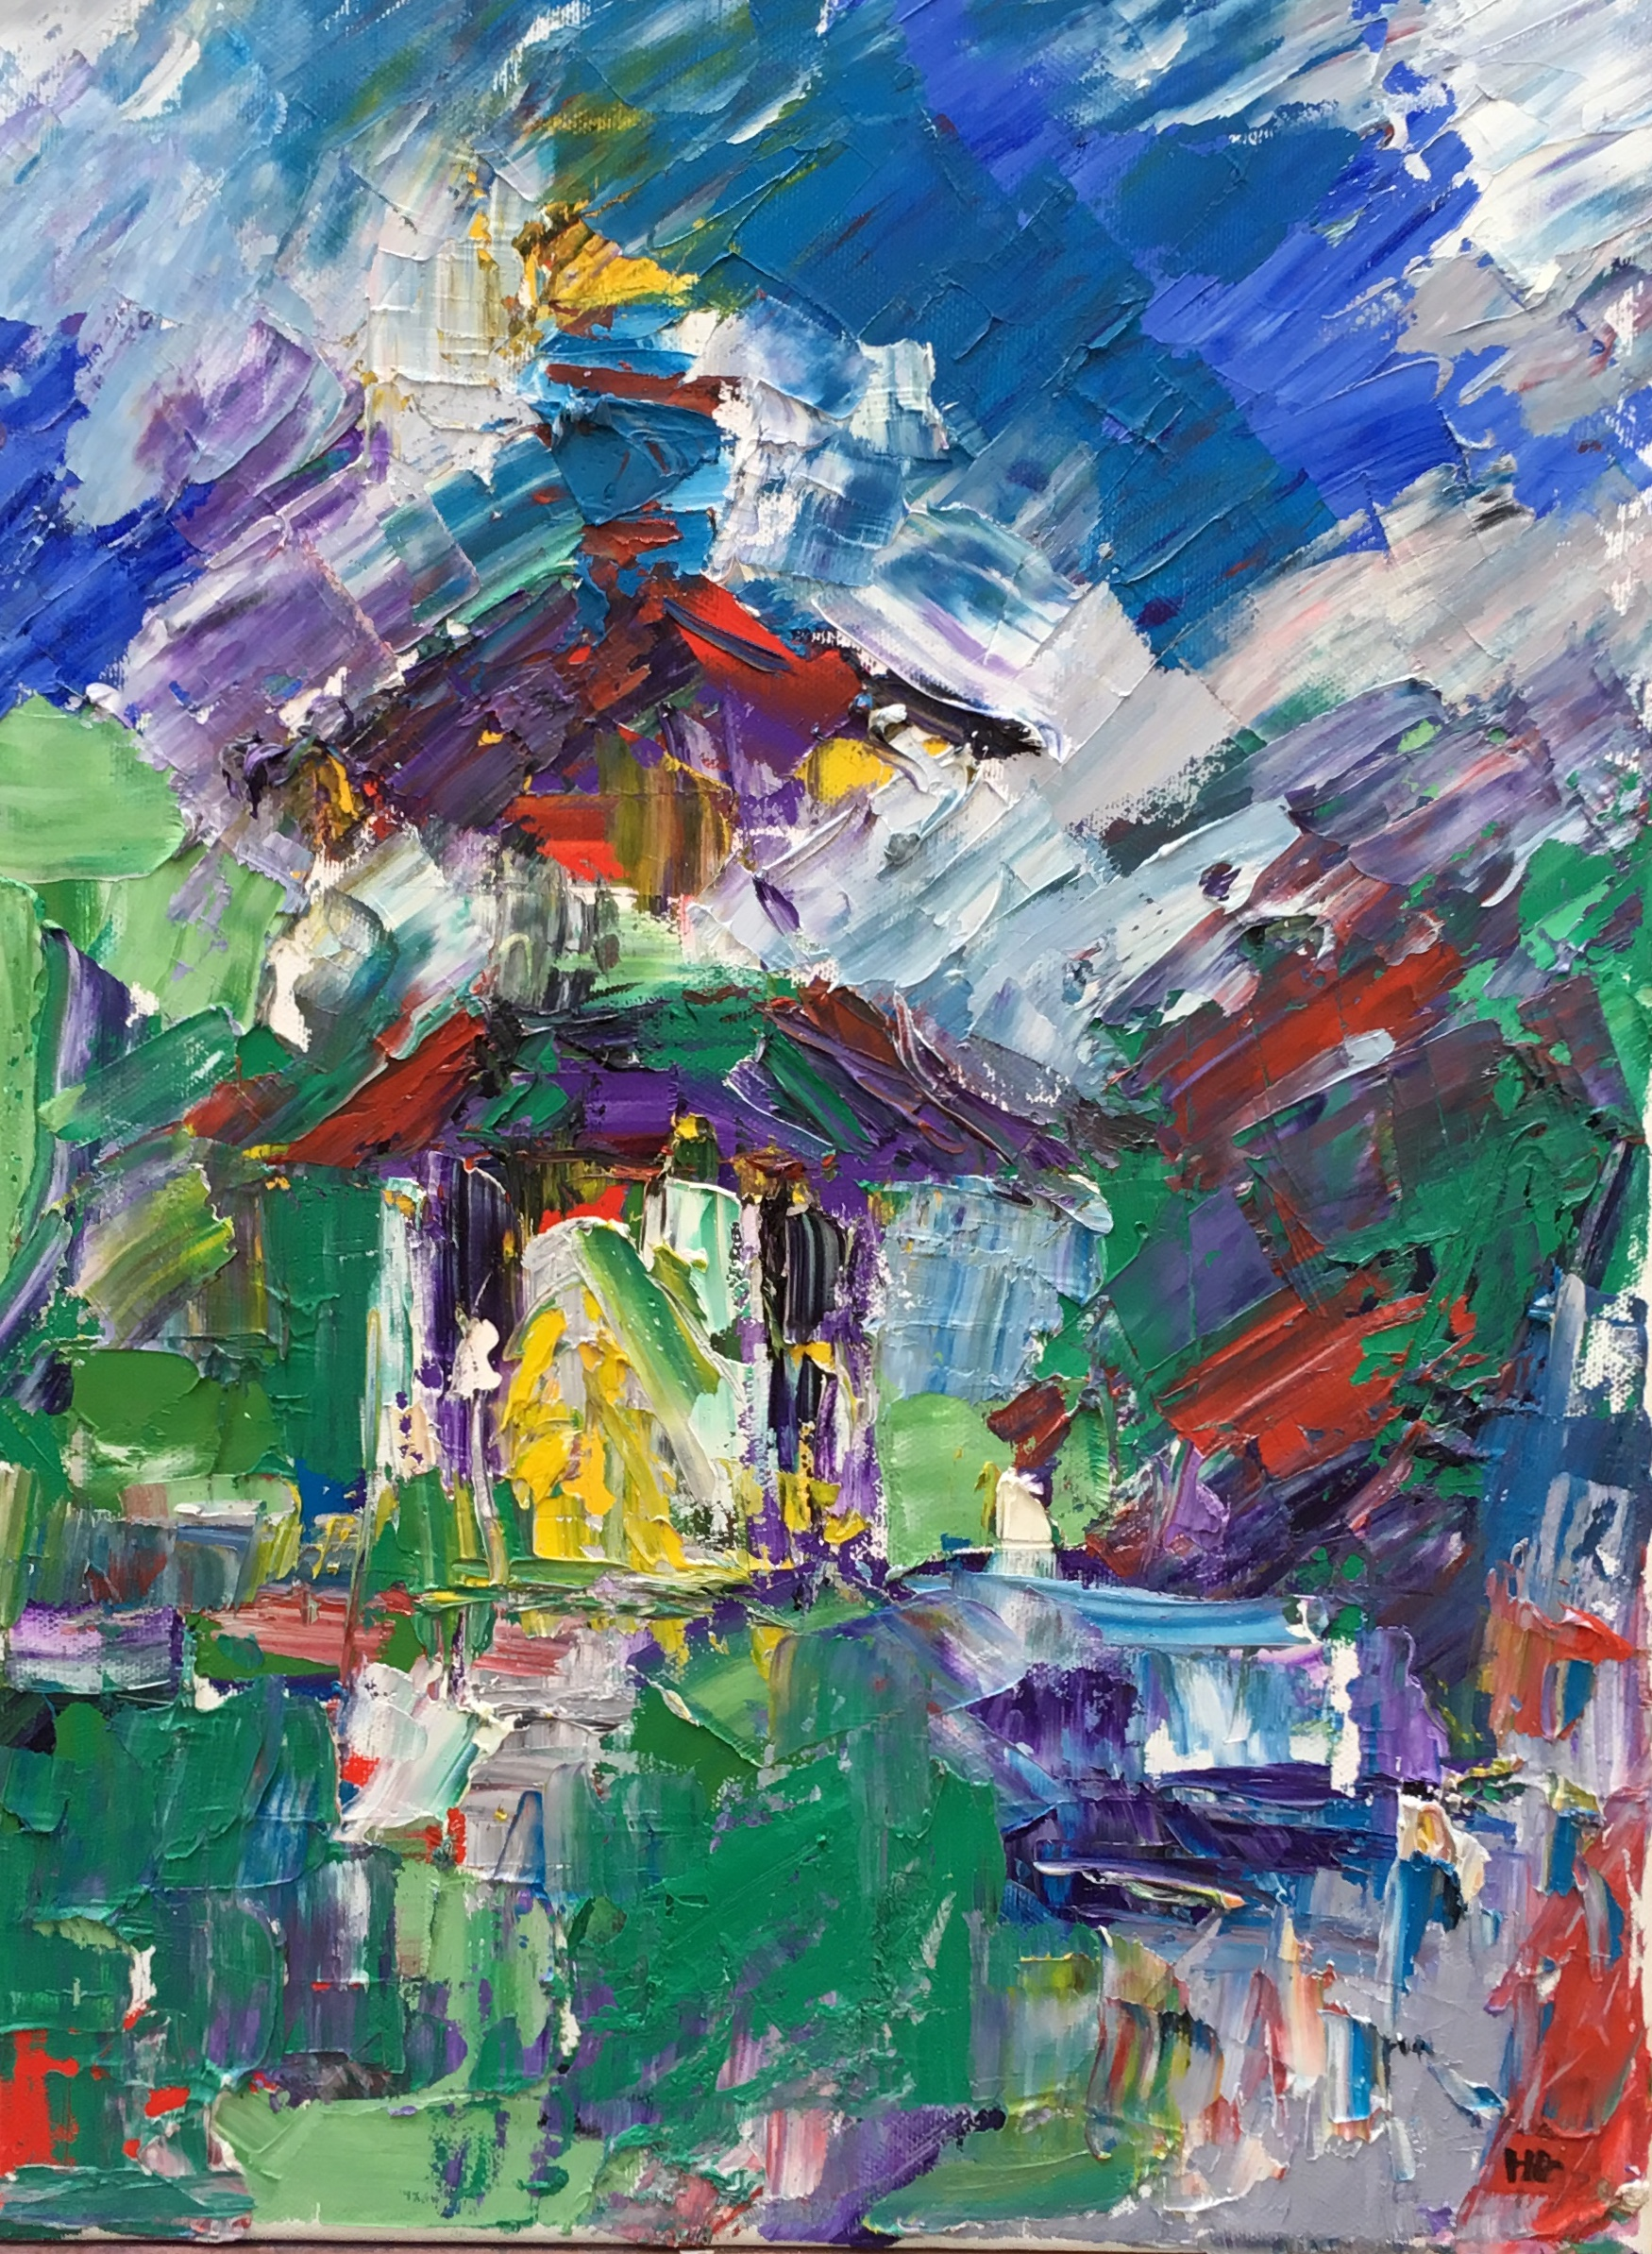 Battersea peace pagoda  oil on canvas  £750  40 by 30 by 1.5 cm  unframed